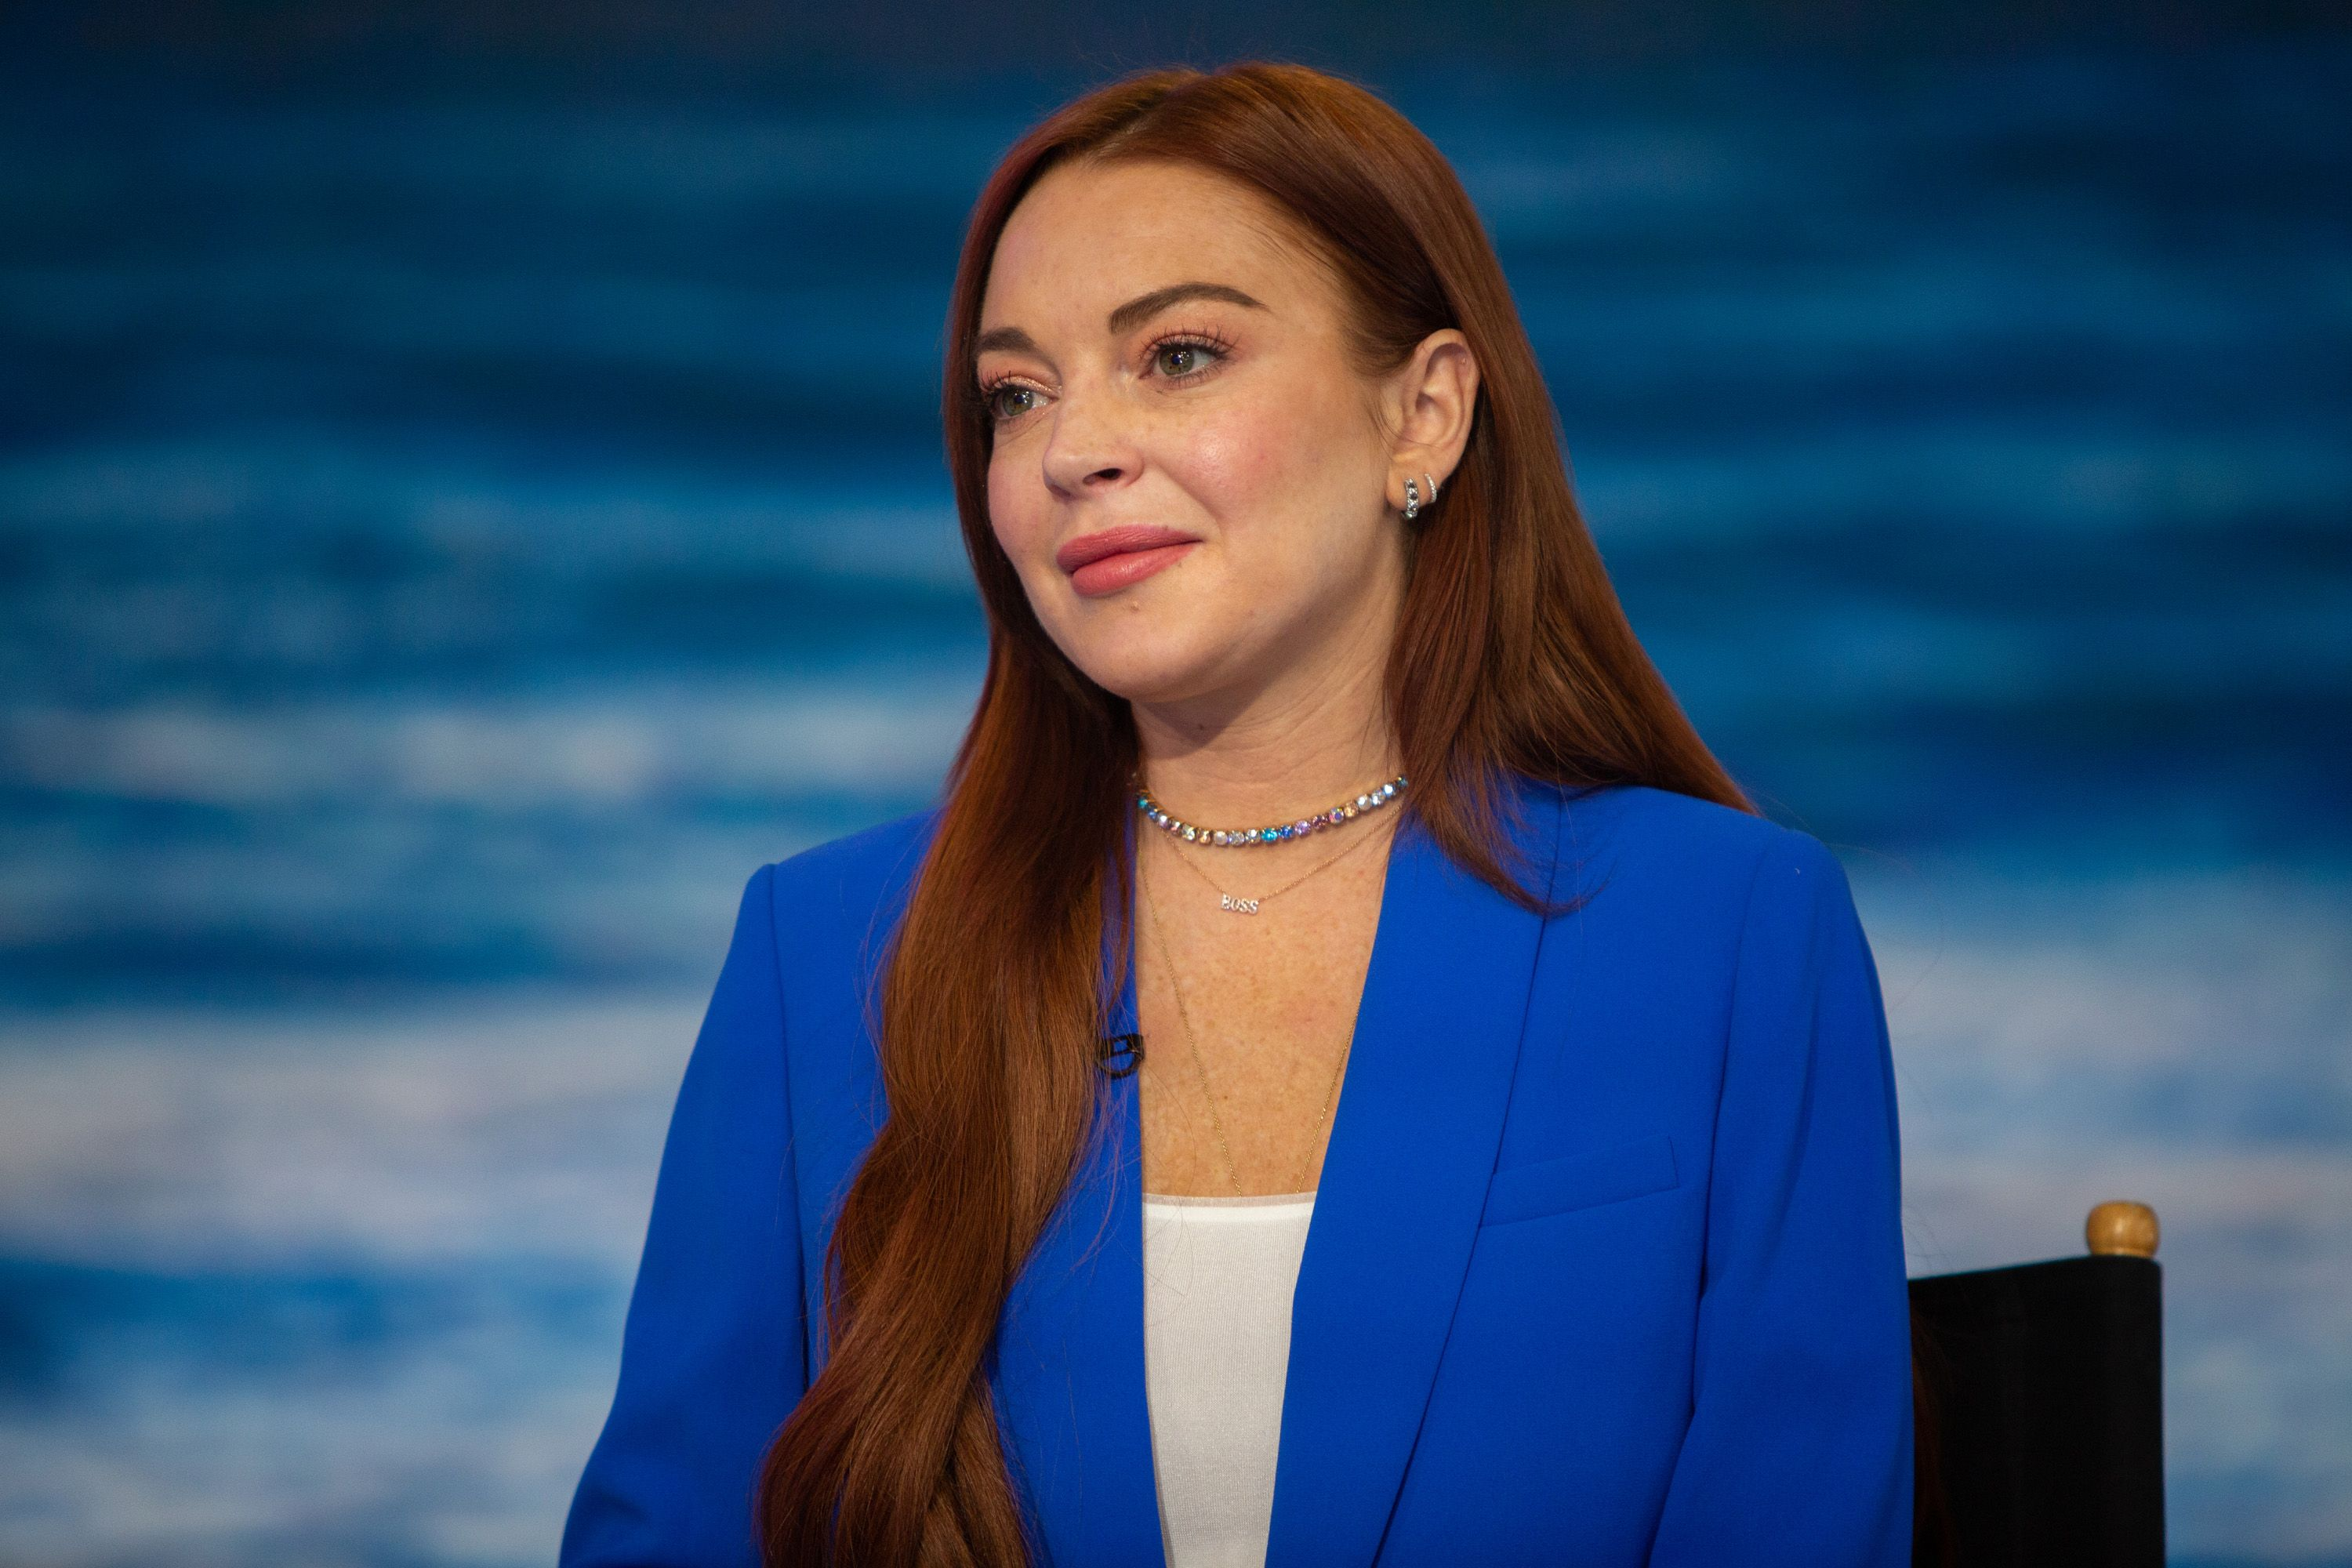 Lindsay Lohan Just Responded to Paris Hilton's Shady Comments About Her and It's...Surprising